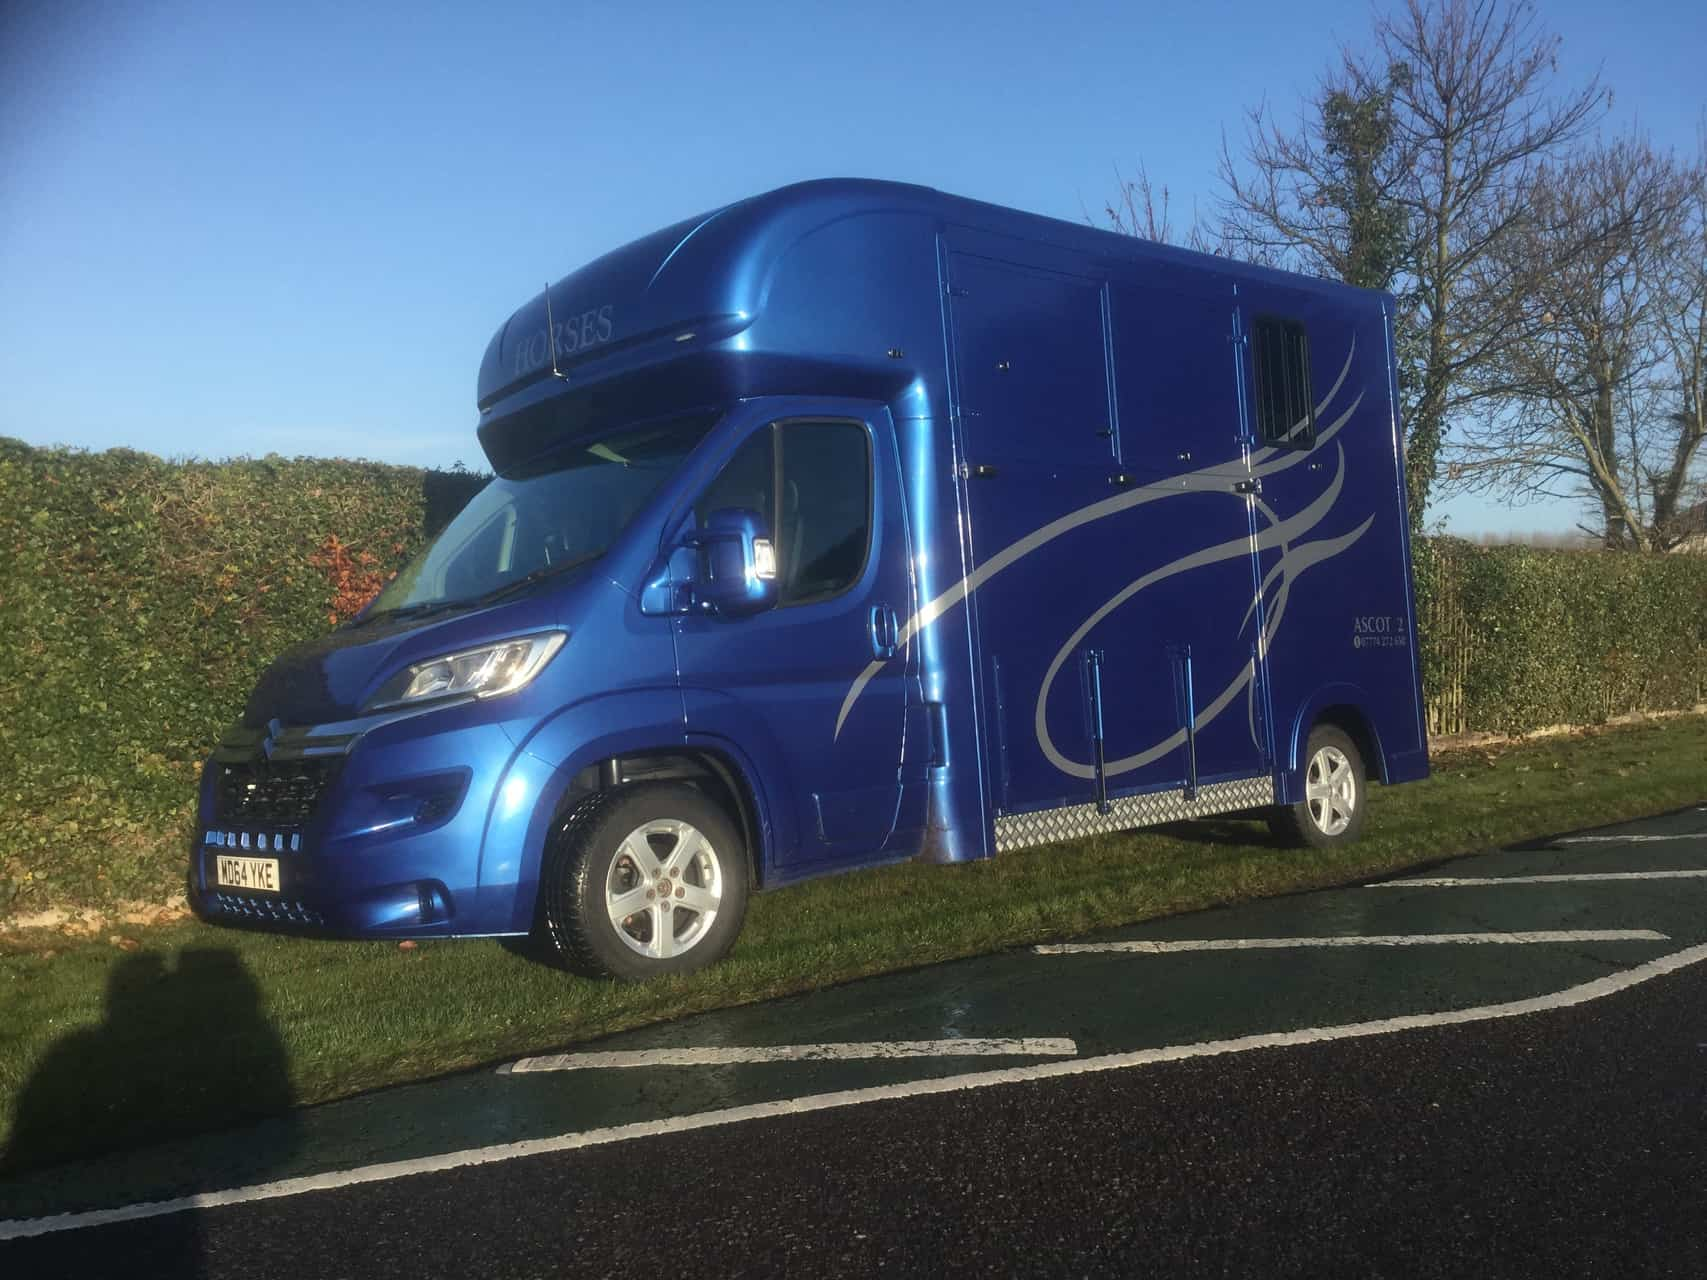 Ascot 2 ,£24,950  New build Citroen Relay 2014,LWB, 40,000 miles, Electric Pack,Cruise control. Bluetooth, Air Con, Sat Nav, Alloy wheels, Separate Day living